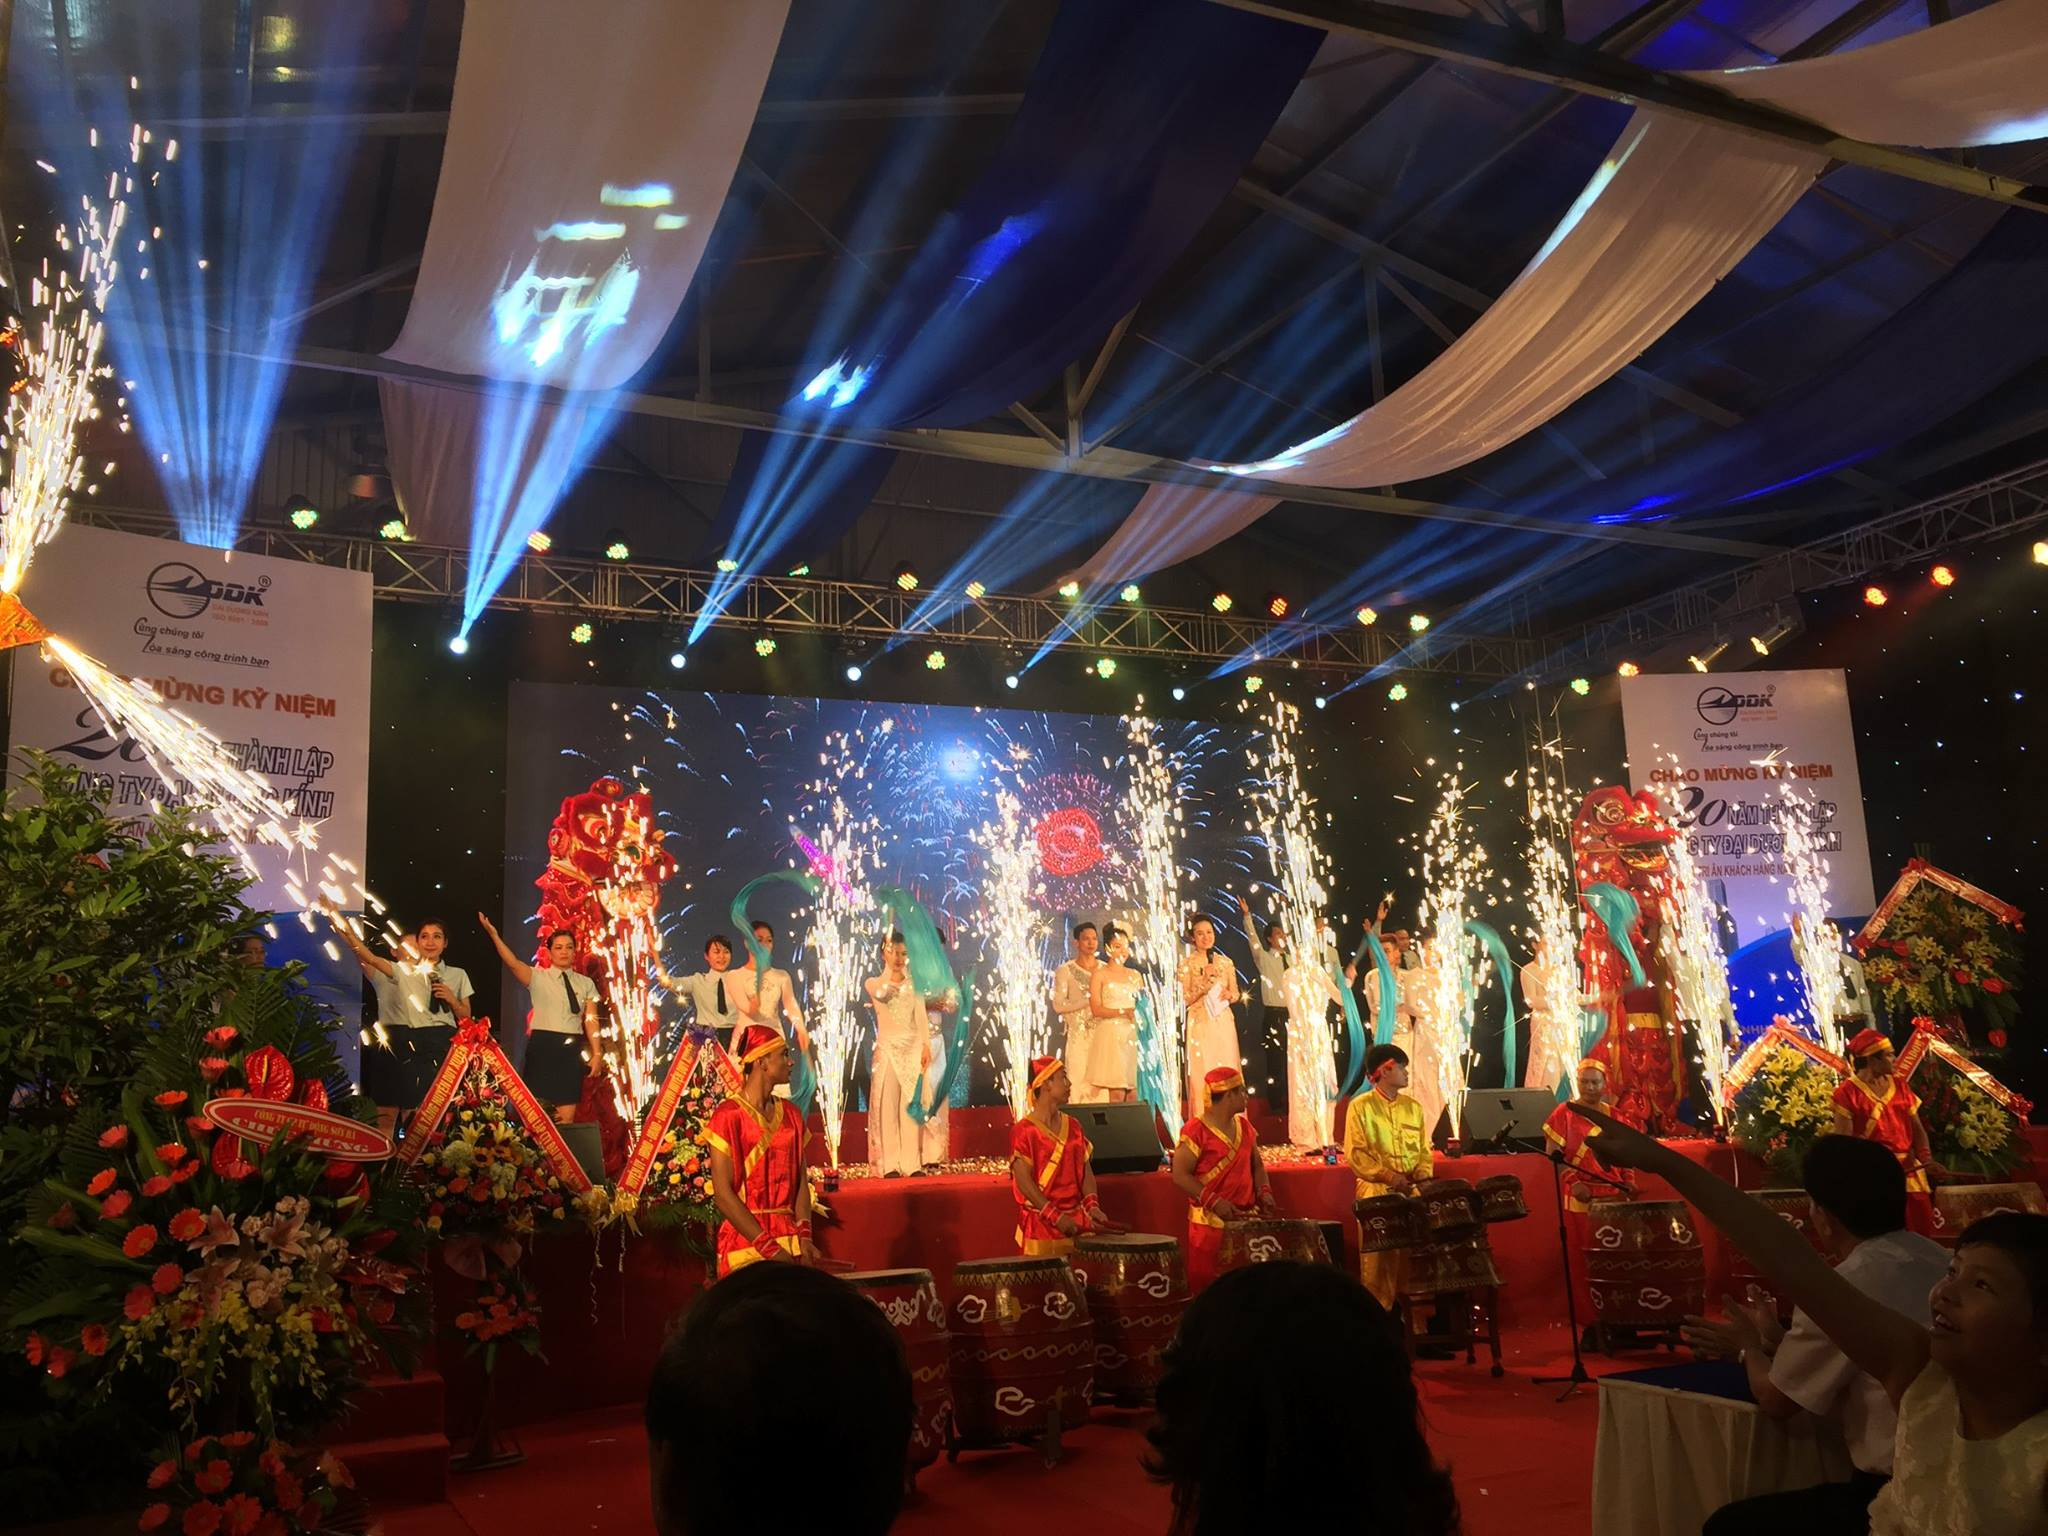 Celebration of 20 years of establishment of the company OCEAN GLASS